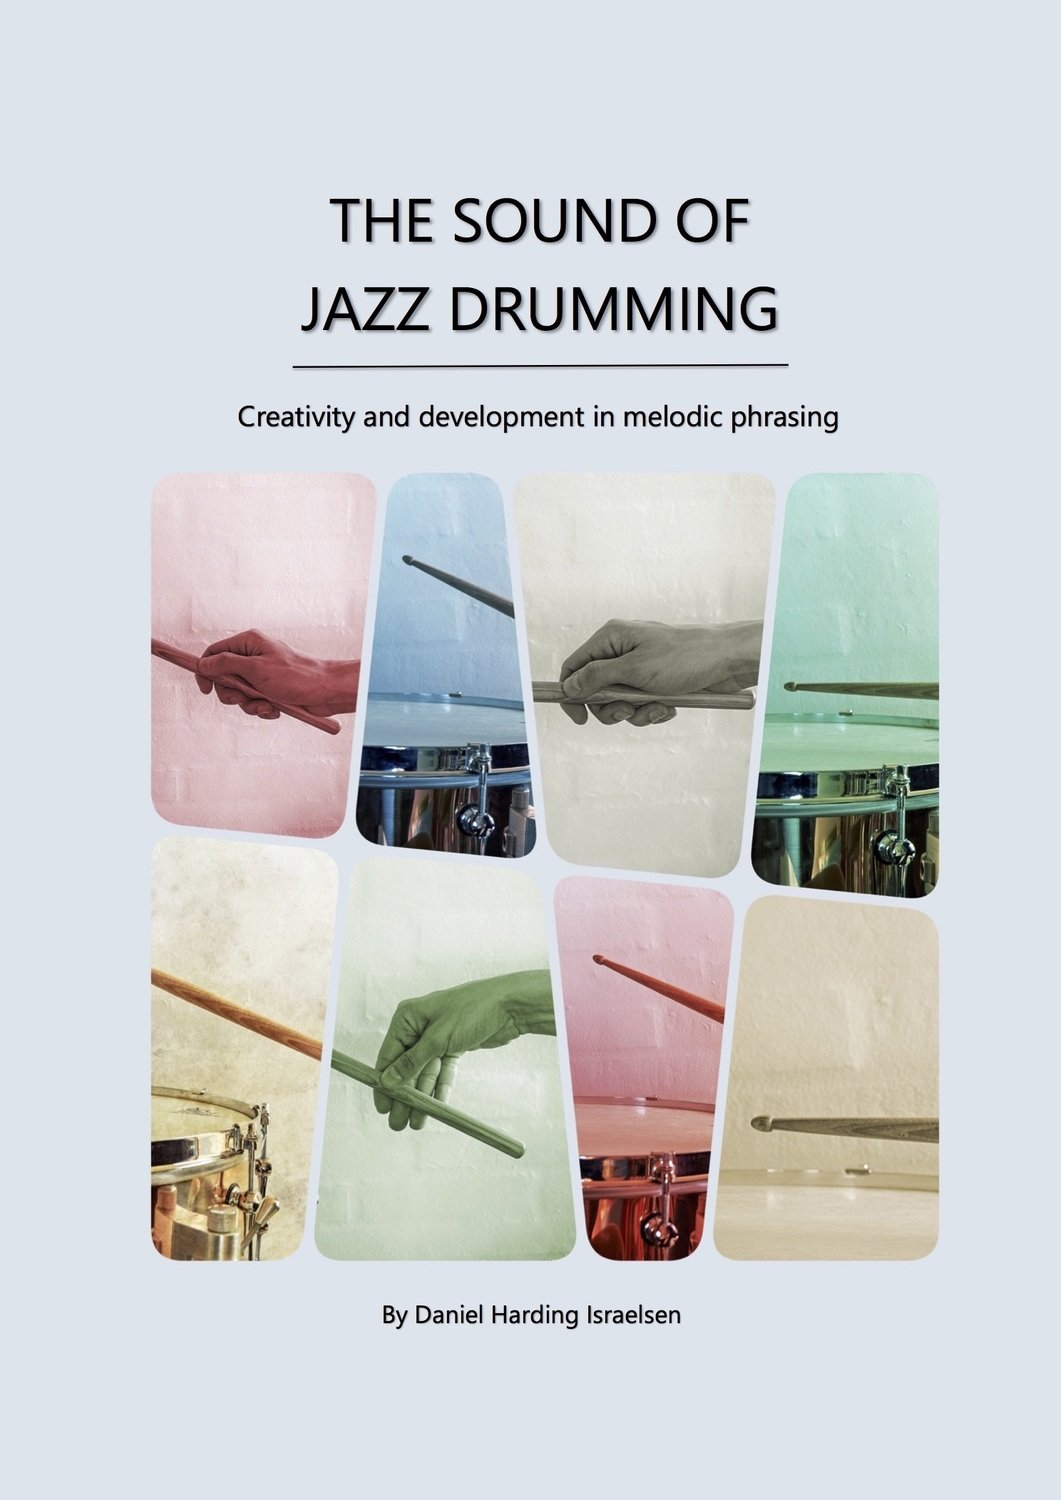 The Sound of Jazz Drumming  -  Creativity and development in melodic phrasing [Australian & N. Zealand residents ONLY]